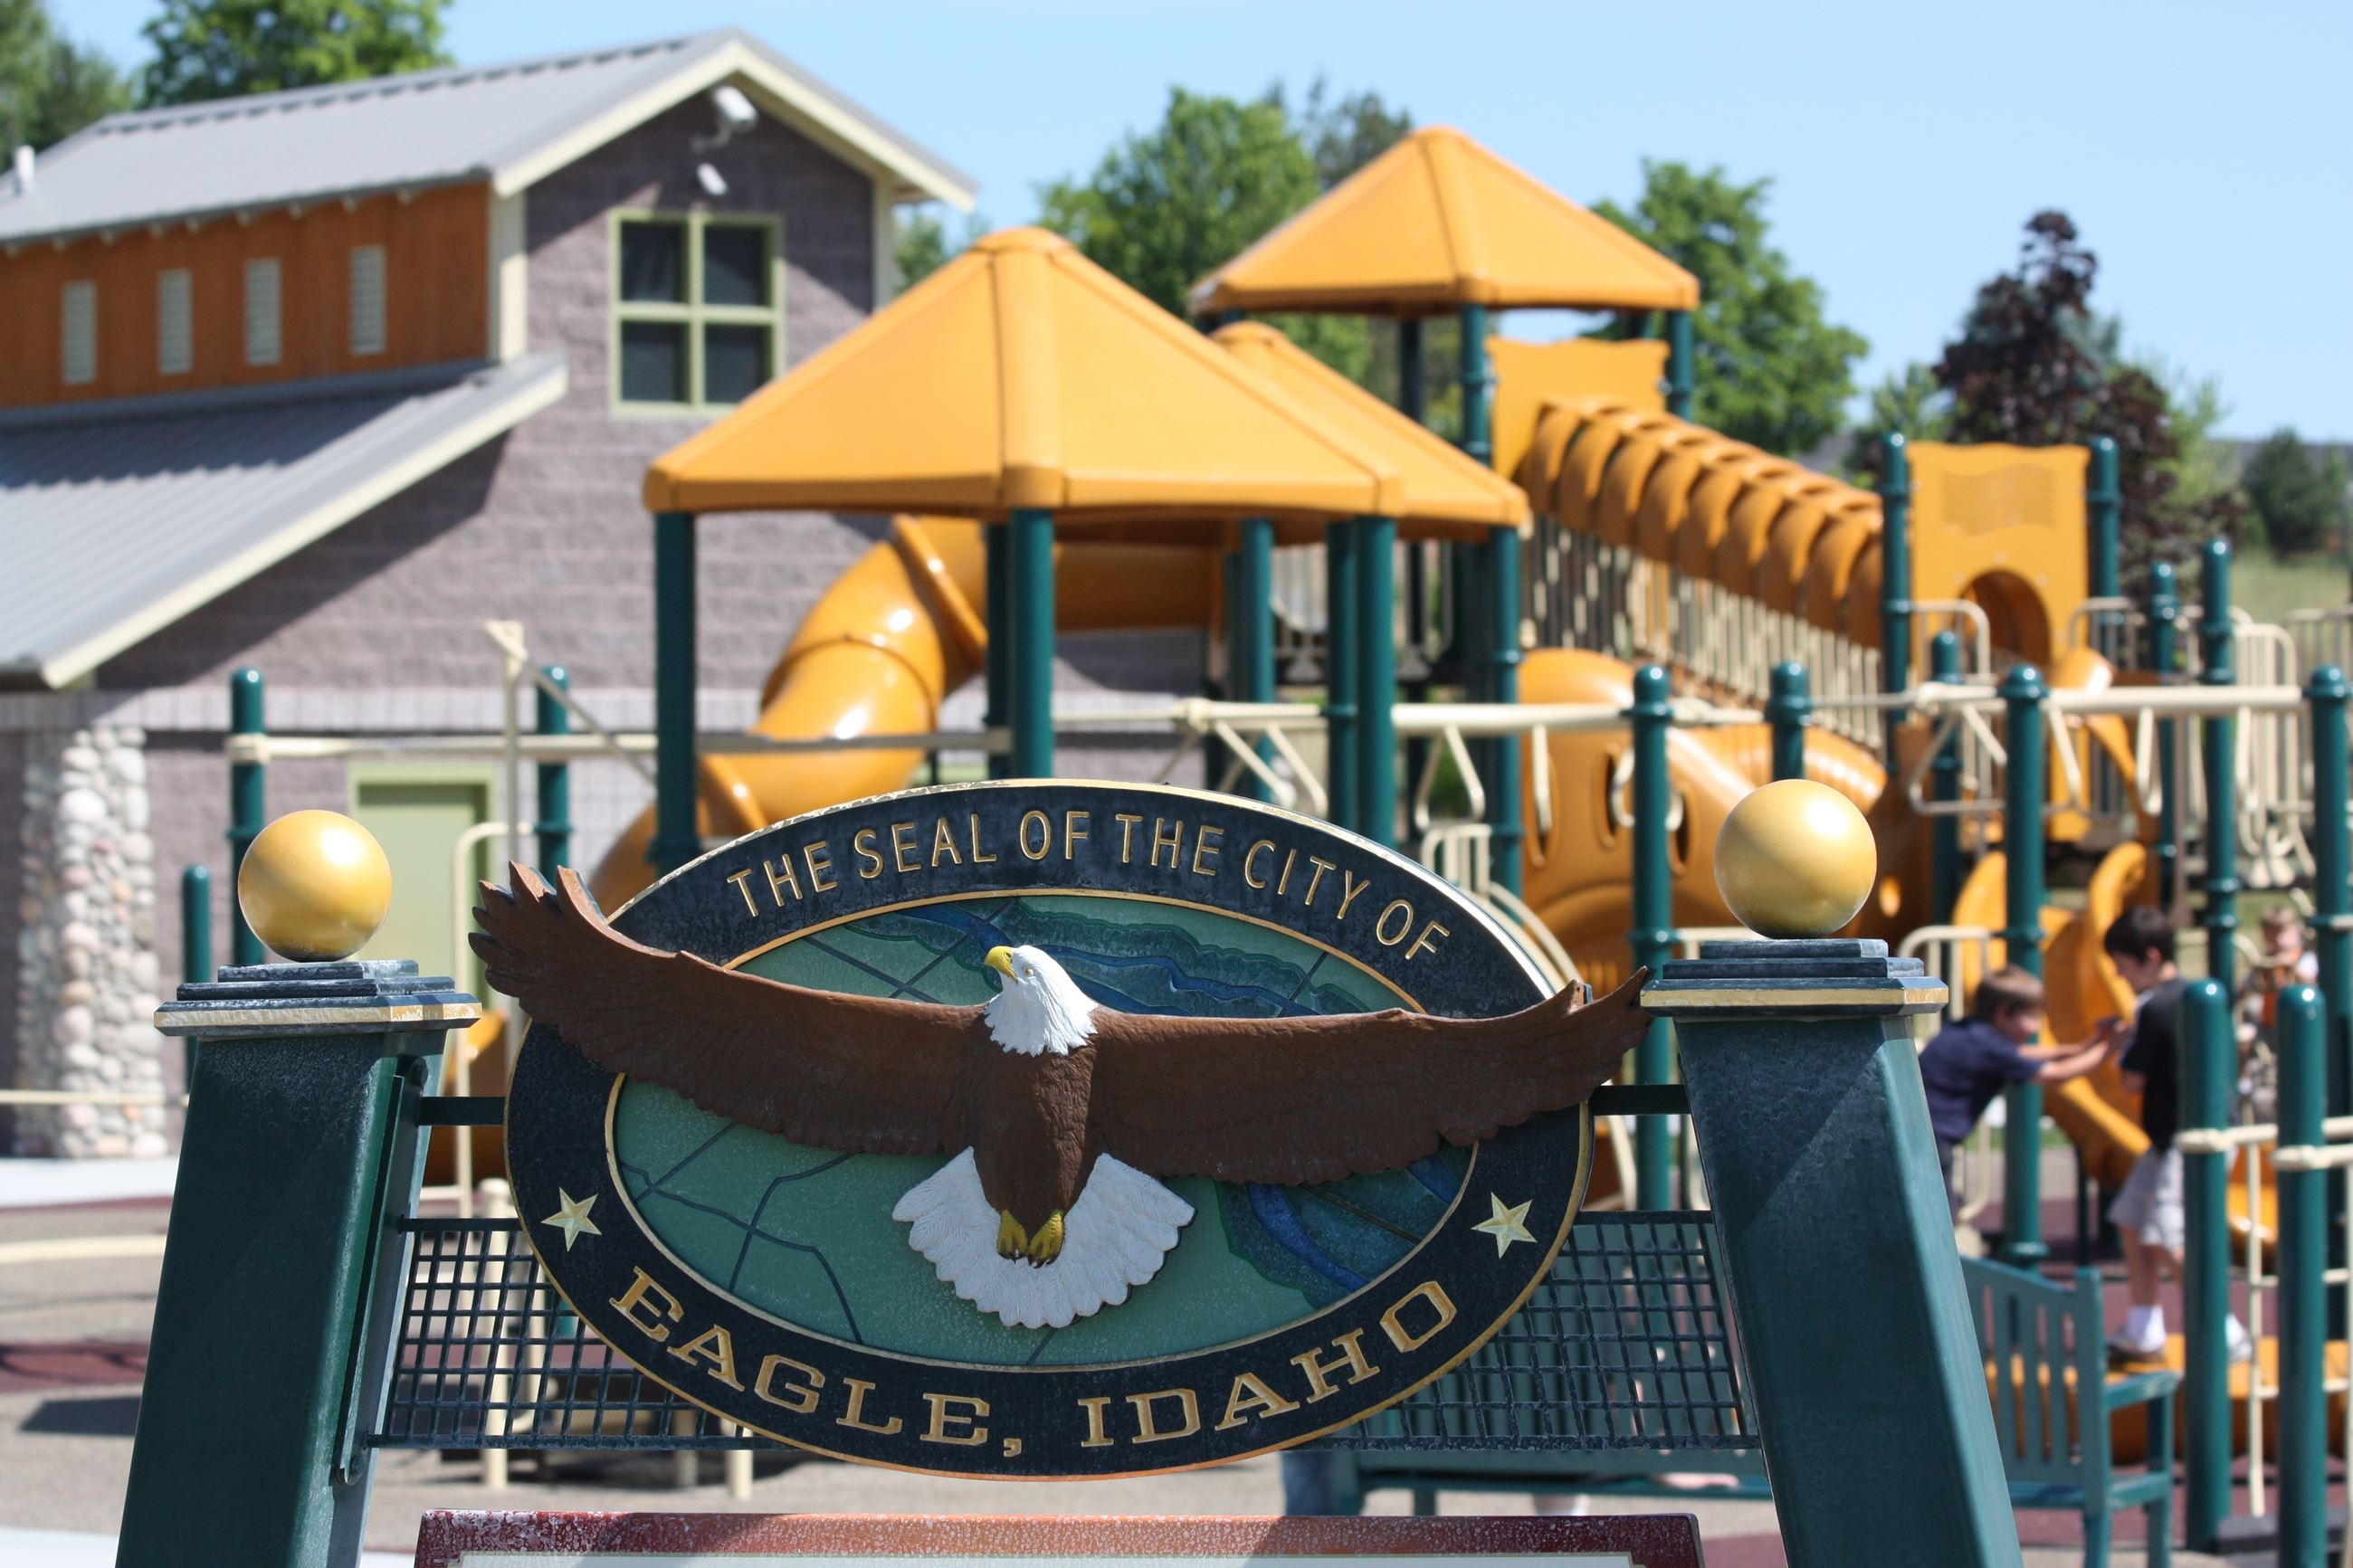 The City of Eagle seal sign in front of the Guerber Park playground.